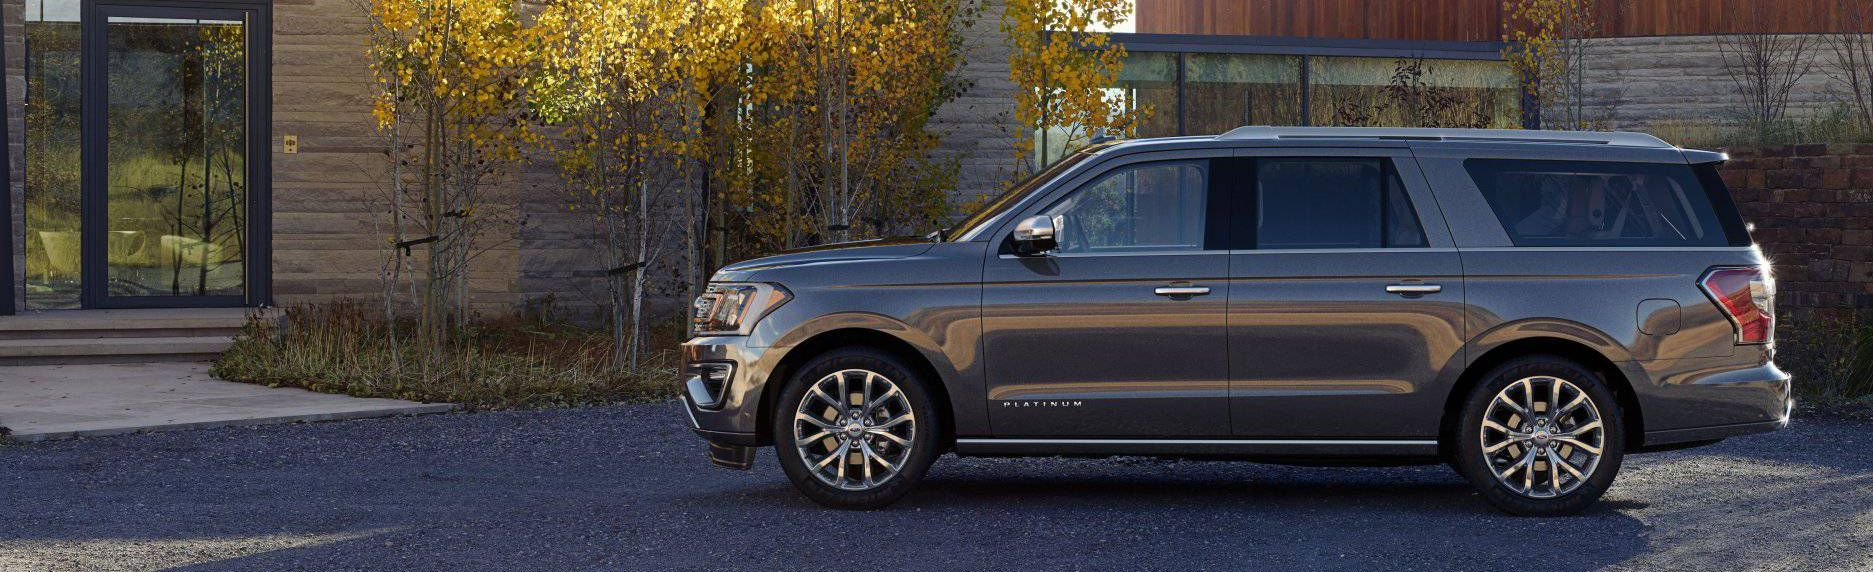 2018 Ford Expedition Preview near Antioch, IL